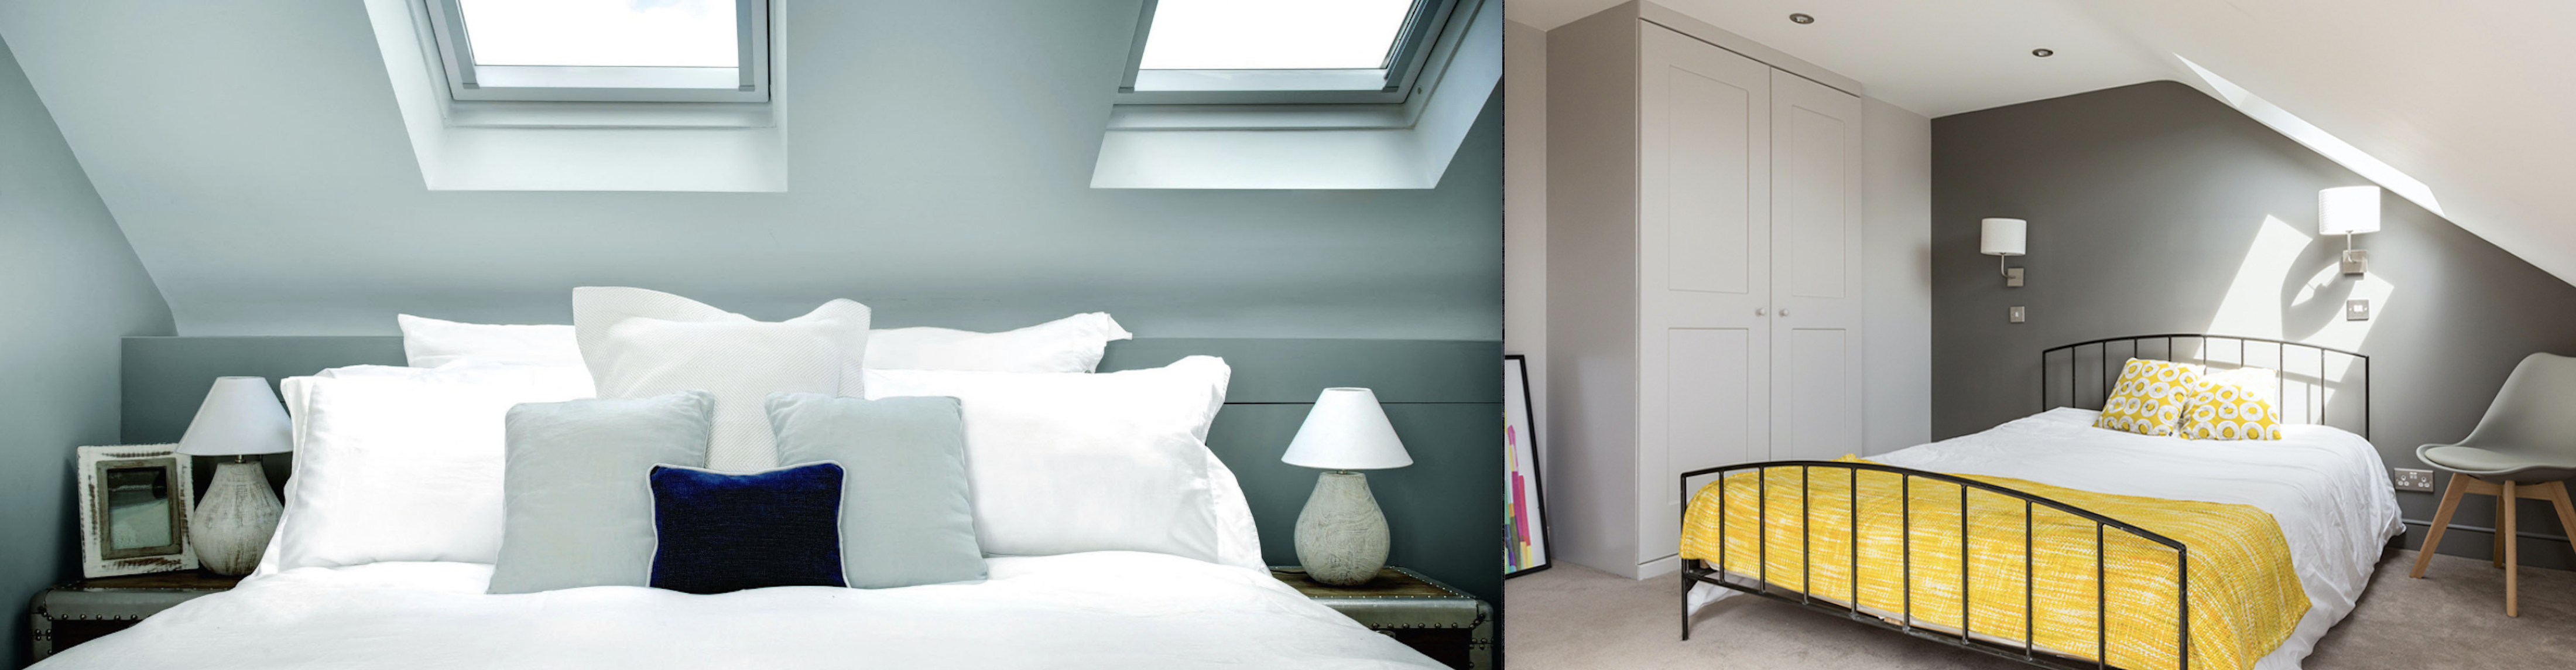 Beautiful Dormer loft conversion in Reddish, creating a new master bedroom with private bathroom, walk in wardrobe and stunning new oak staircase with Velux polyurethane SK06 GPU windows.